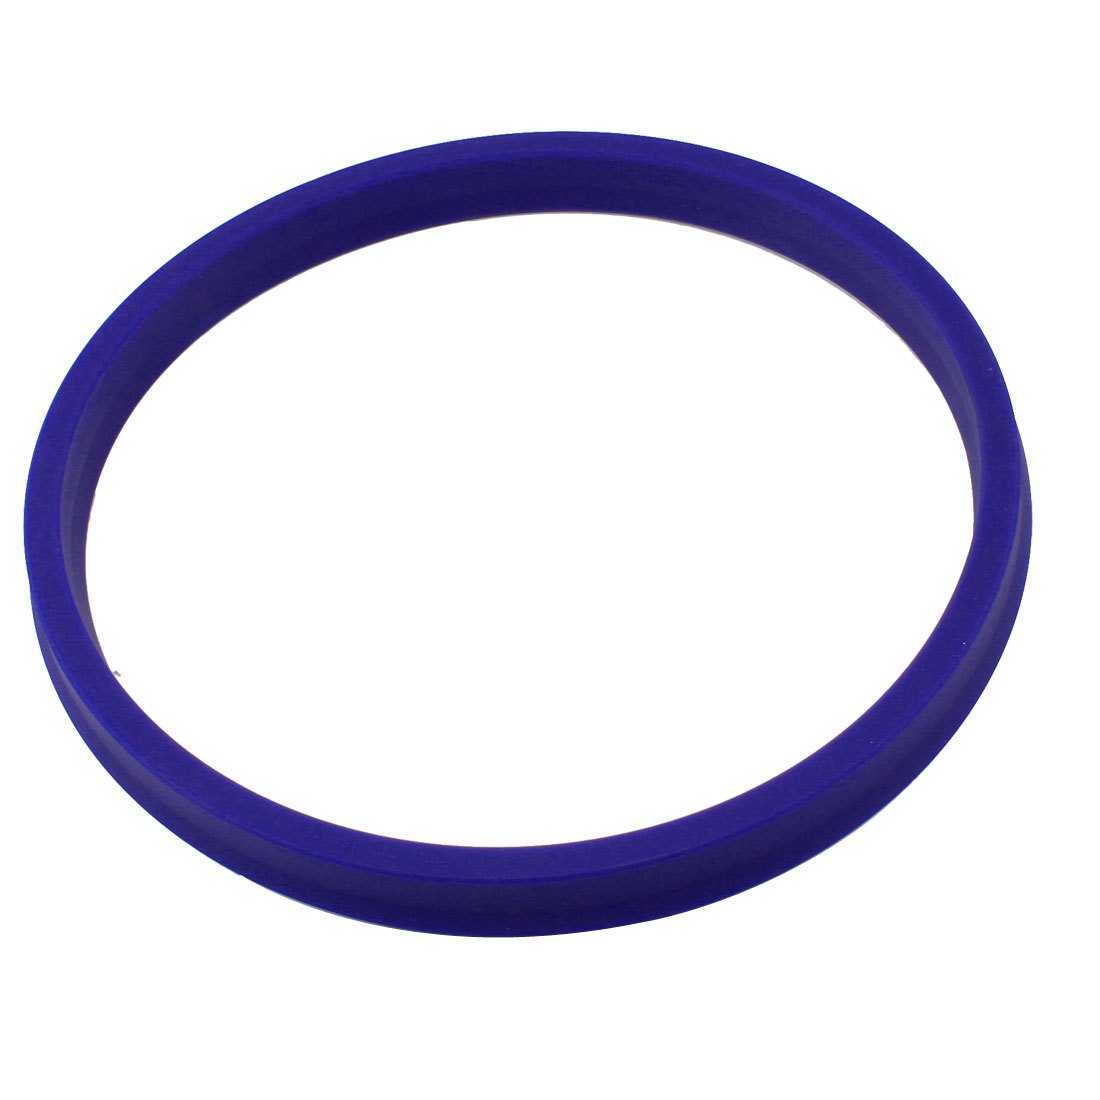 200mm x 184mm x 18mm PU Oil Seal Ring Gasket Blue for Pump Piston